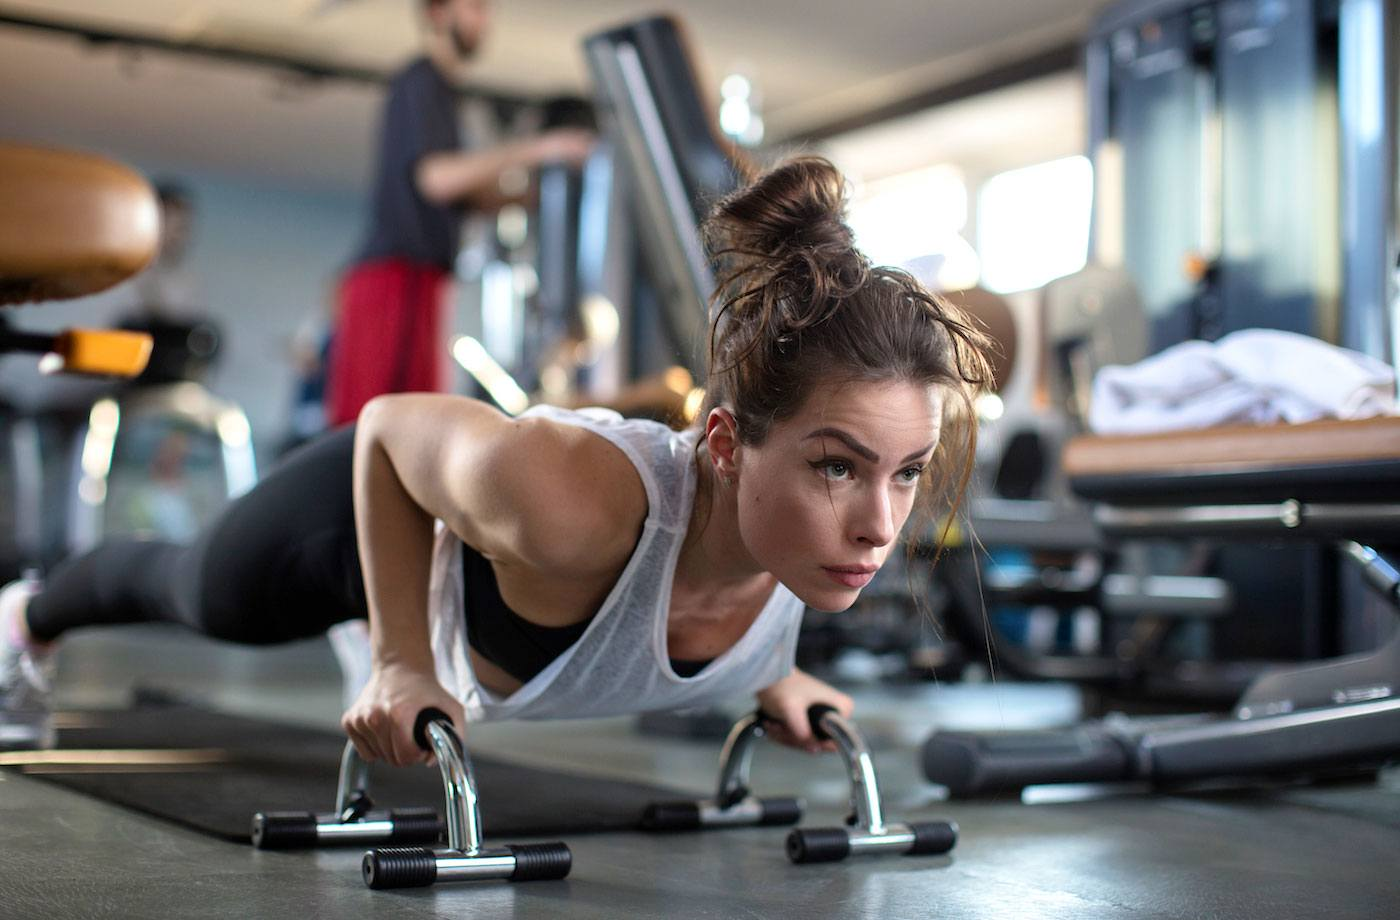 Personal trainers reveal the truth about body part-focused strength training workouts